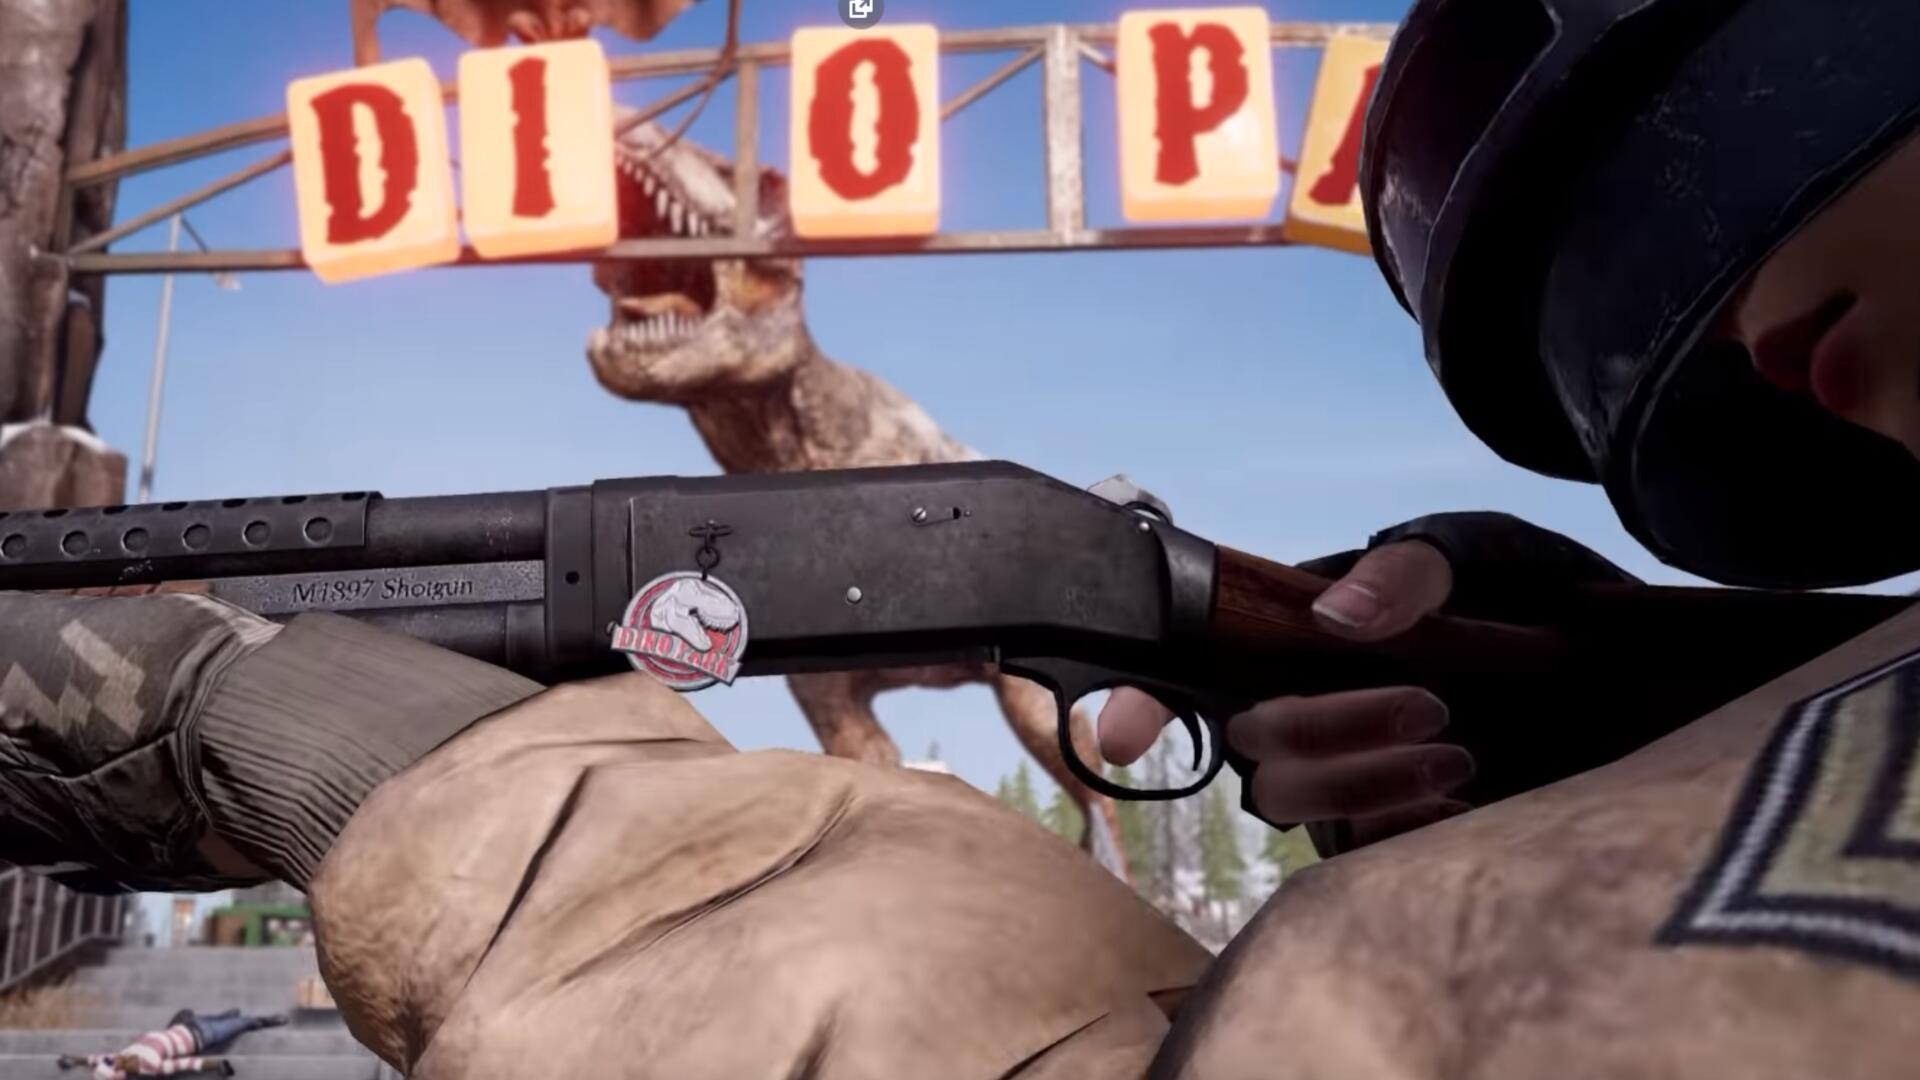 PUBG Introduces a Free Weapon Mastery System So You Can Earn More Loot